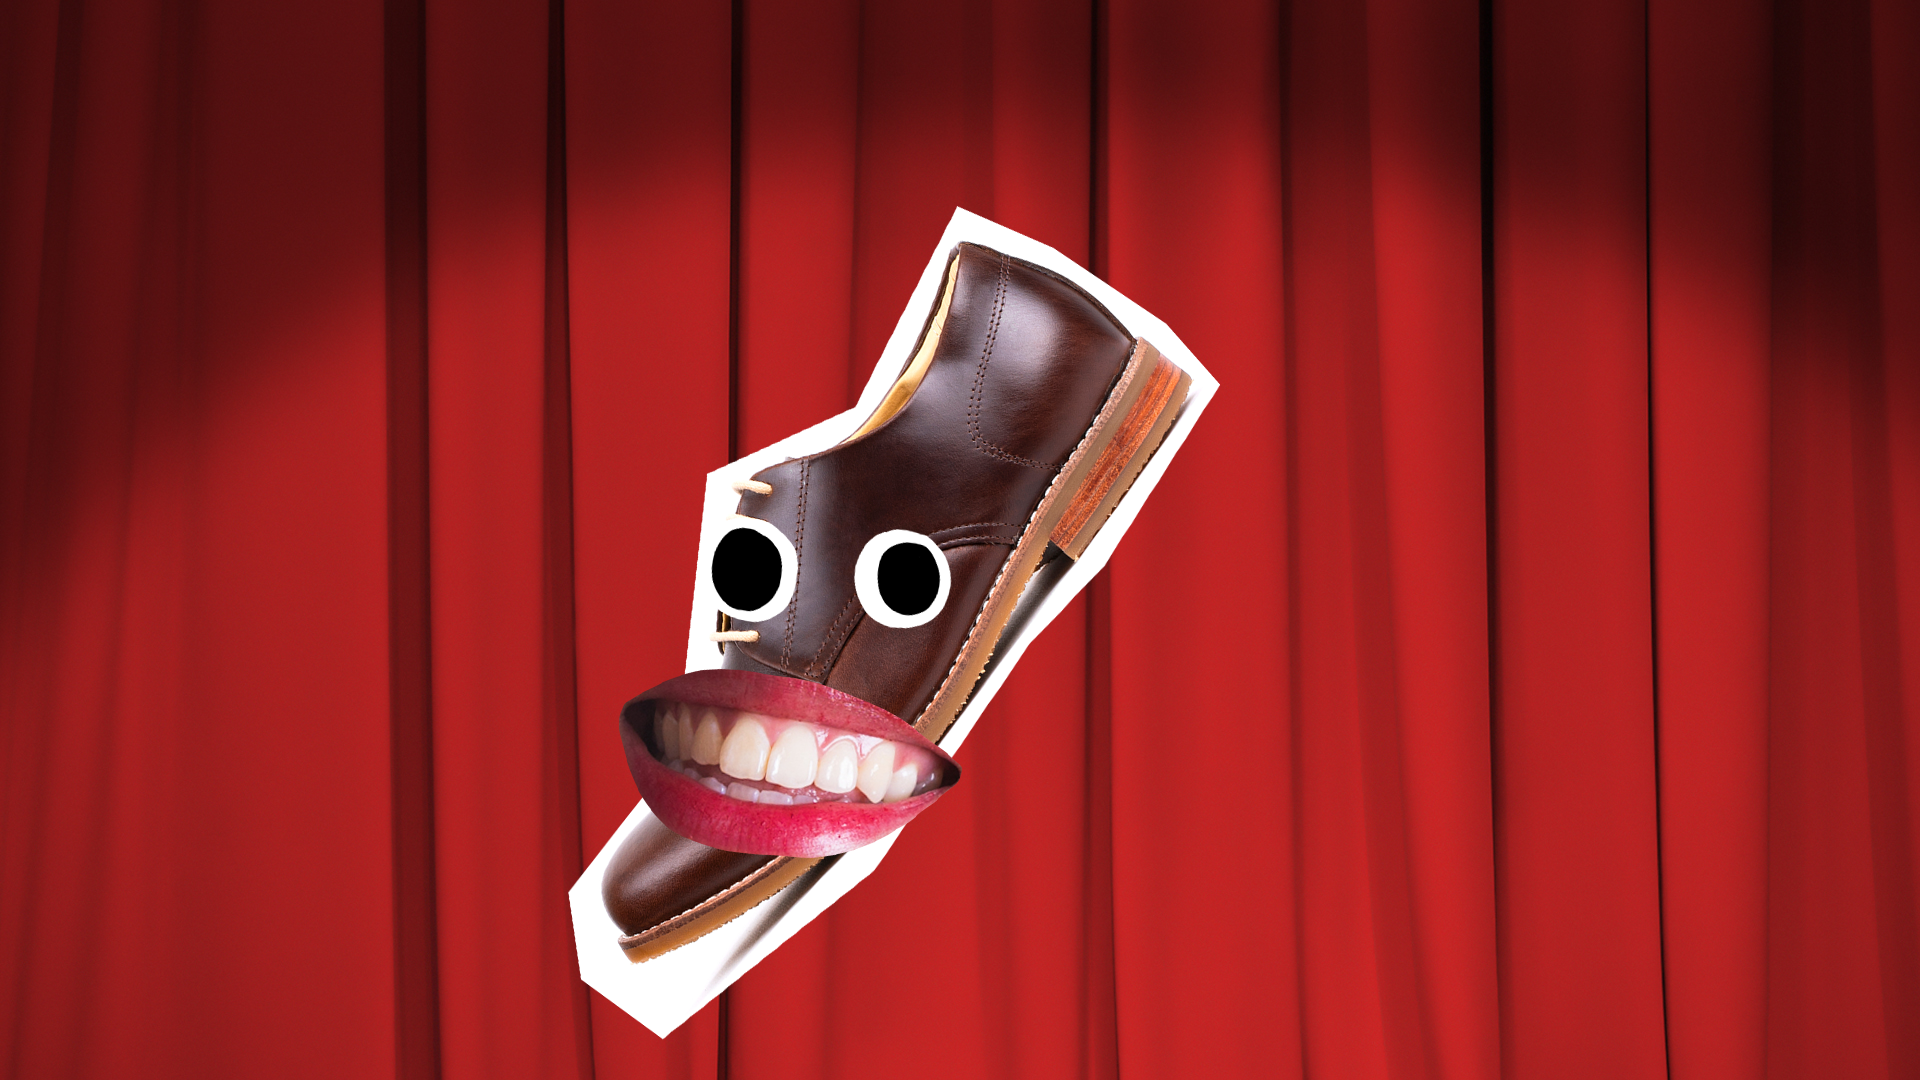 A shoe with a smile on its face in front of a theatrical red curtain